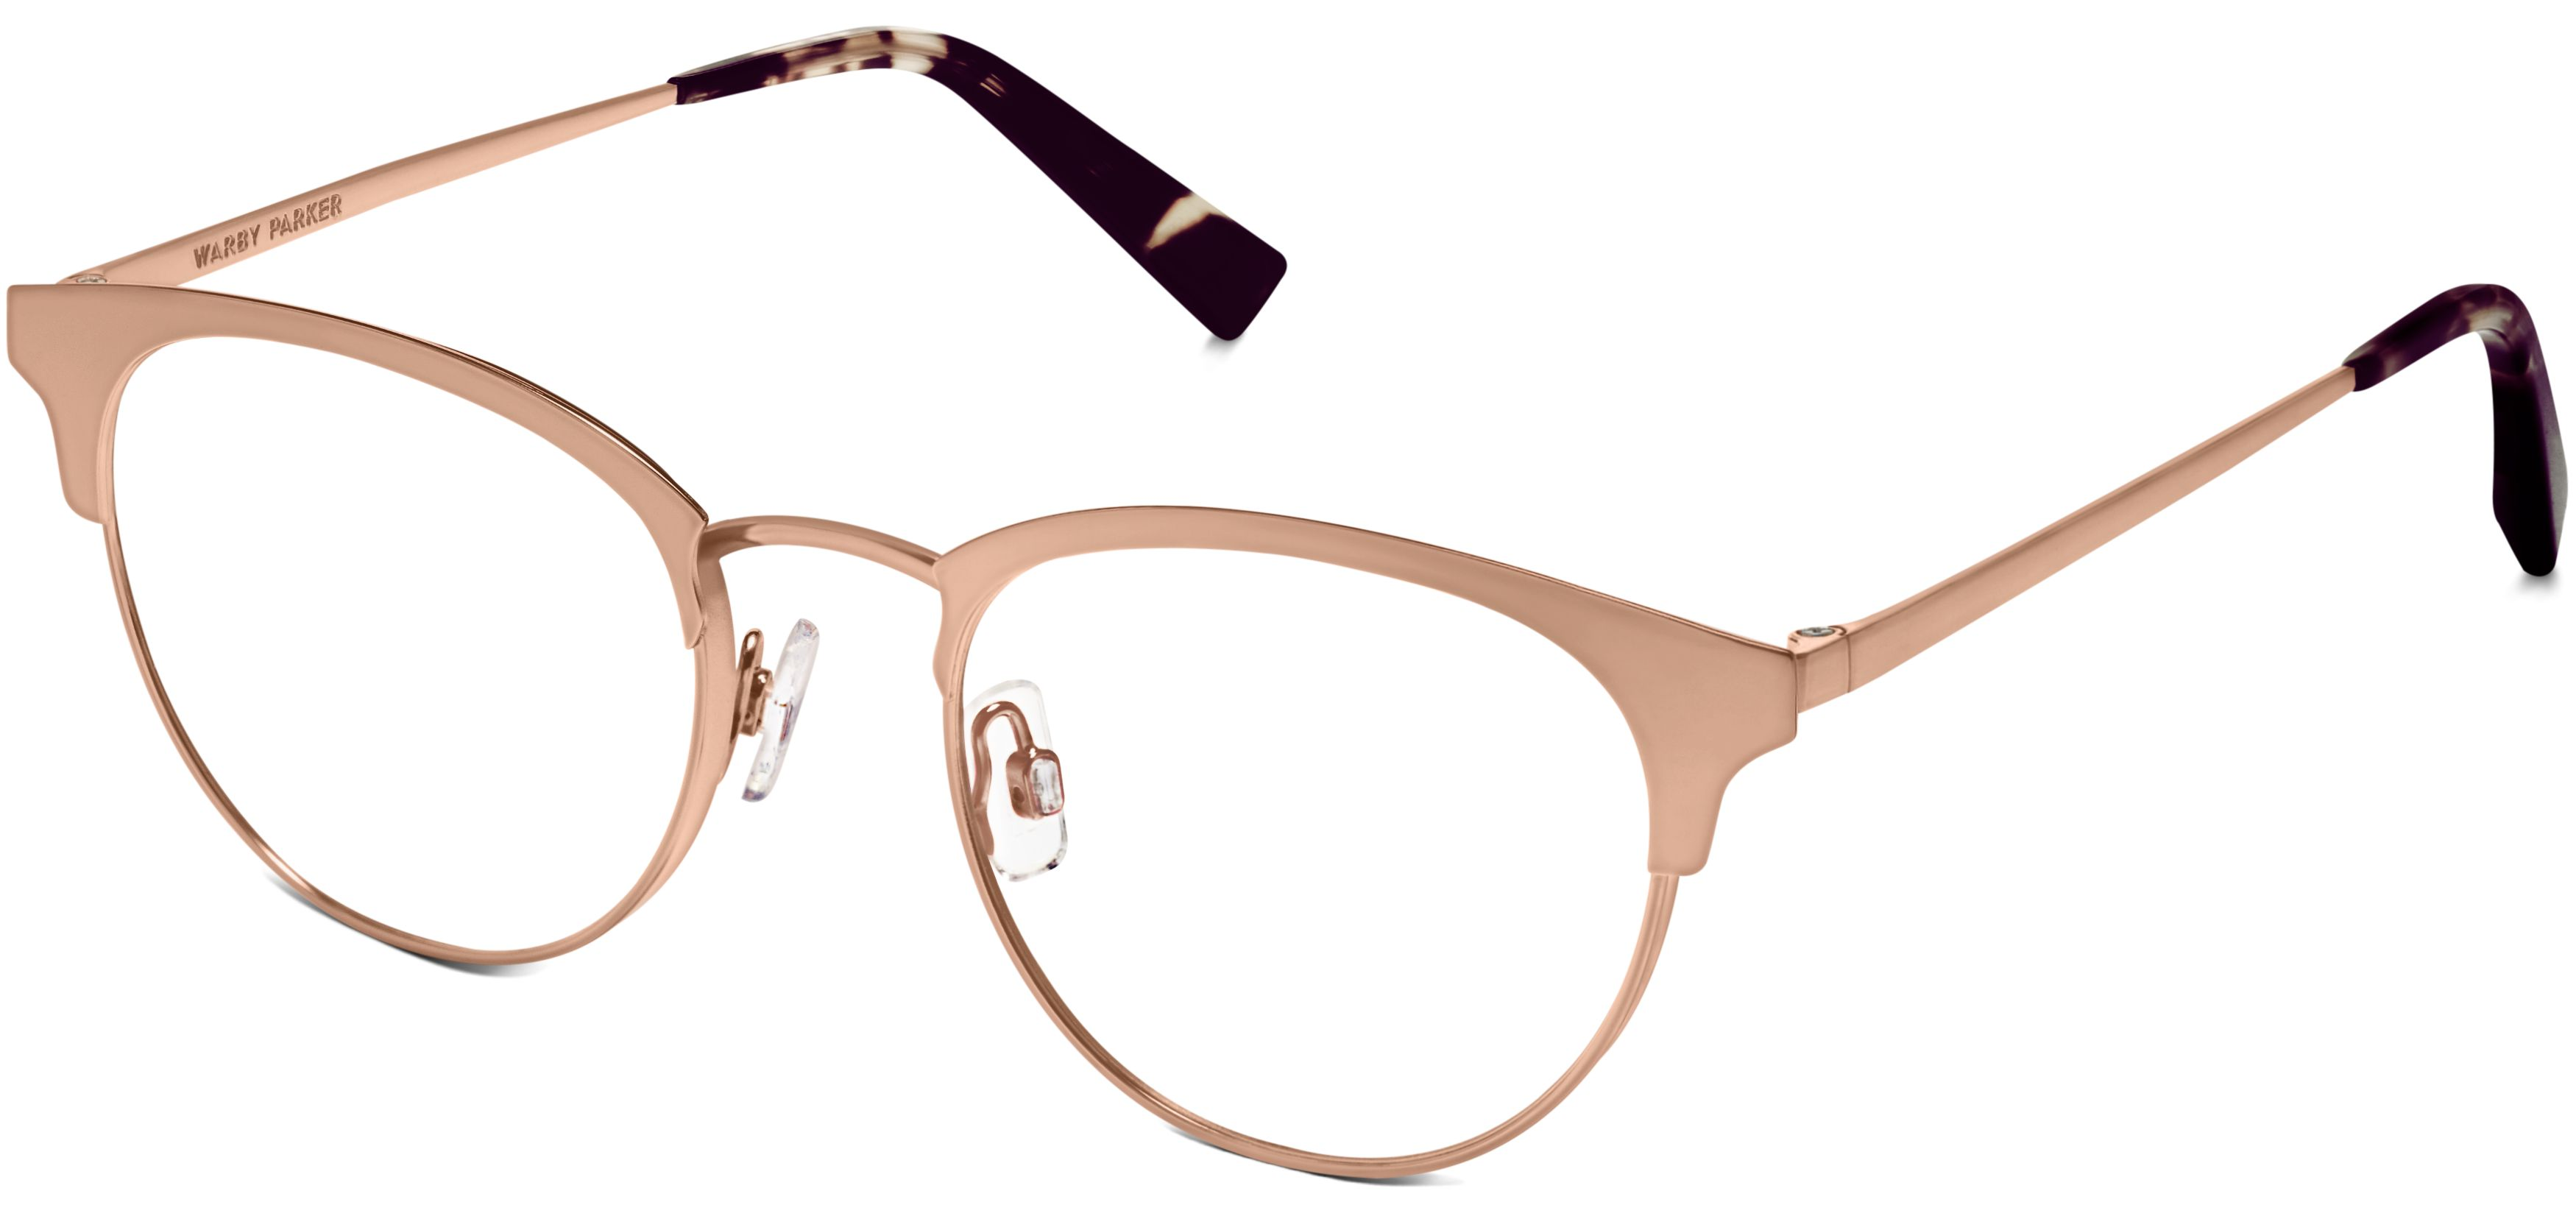 dcfbbaf6d7 Blair Eyeglasses in Rose Gold for Women